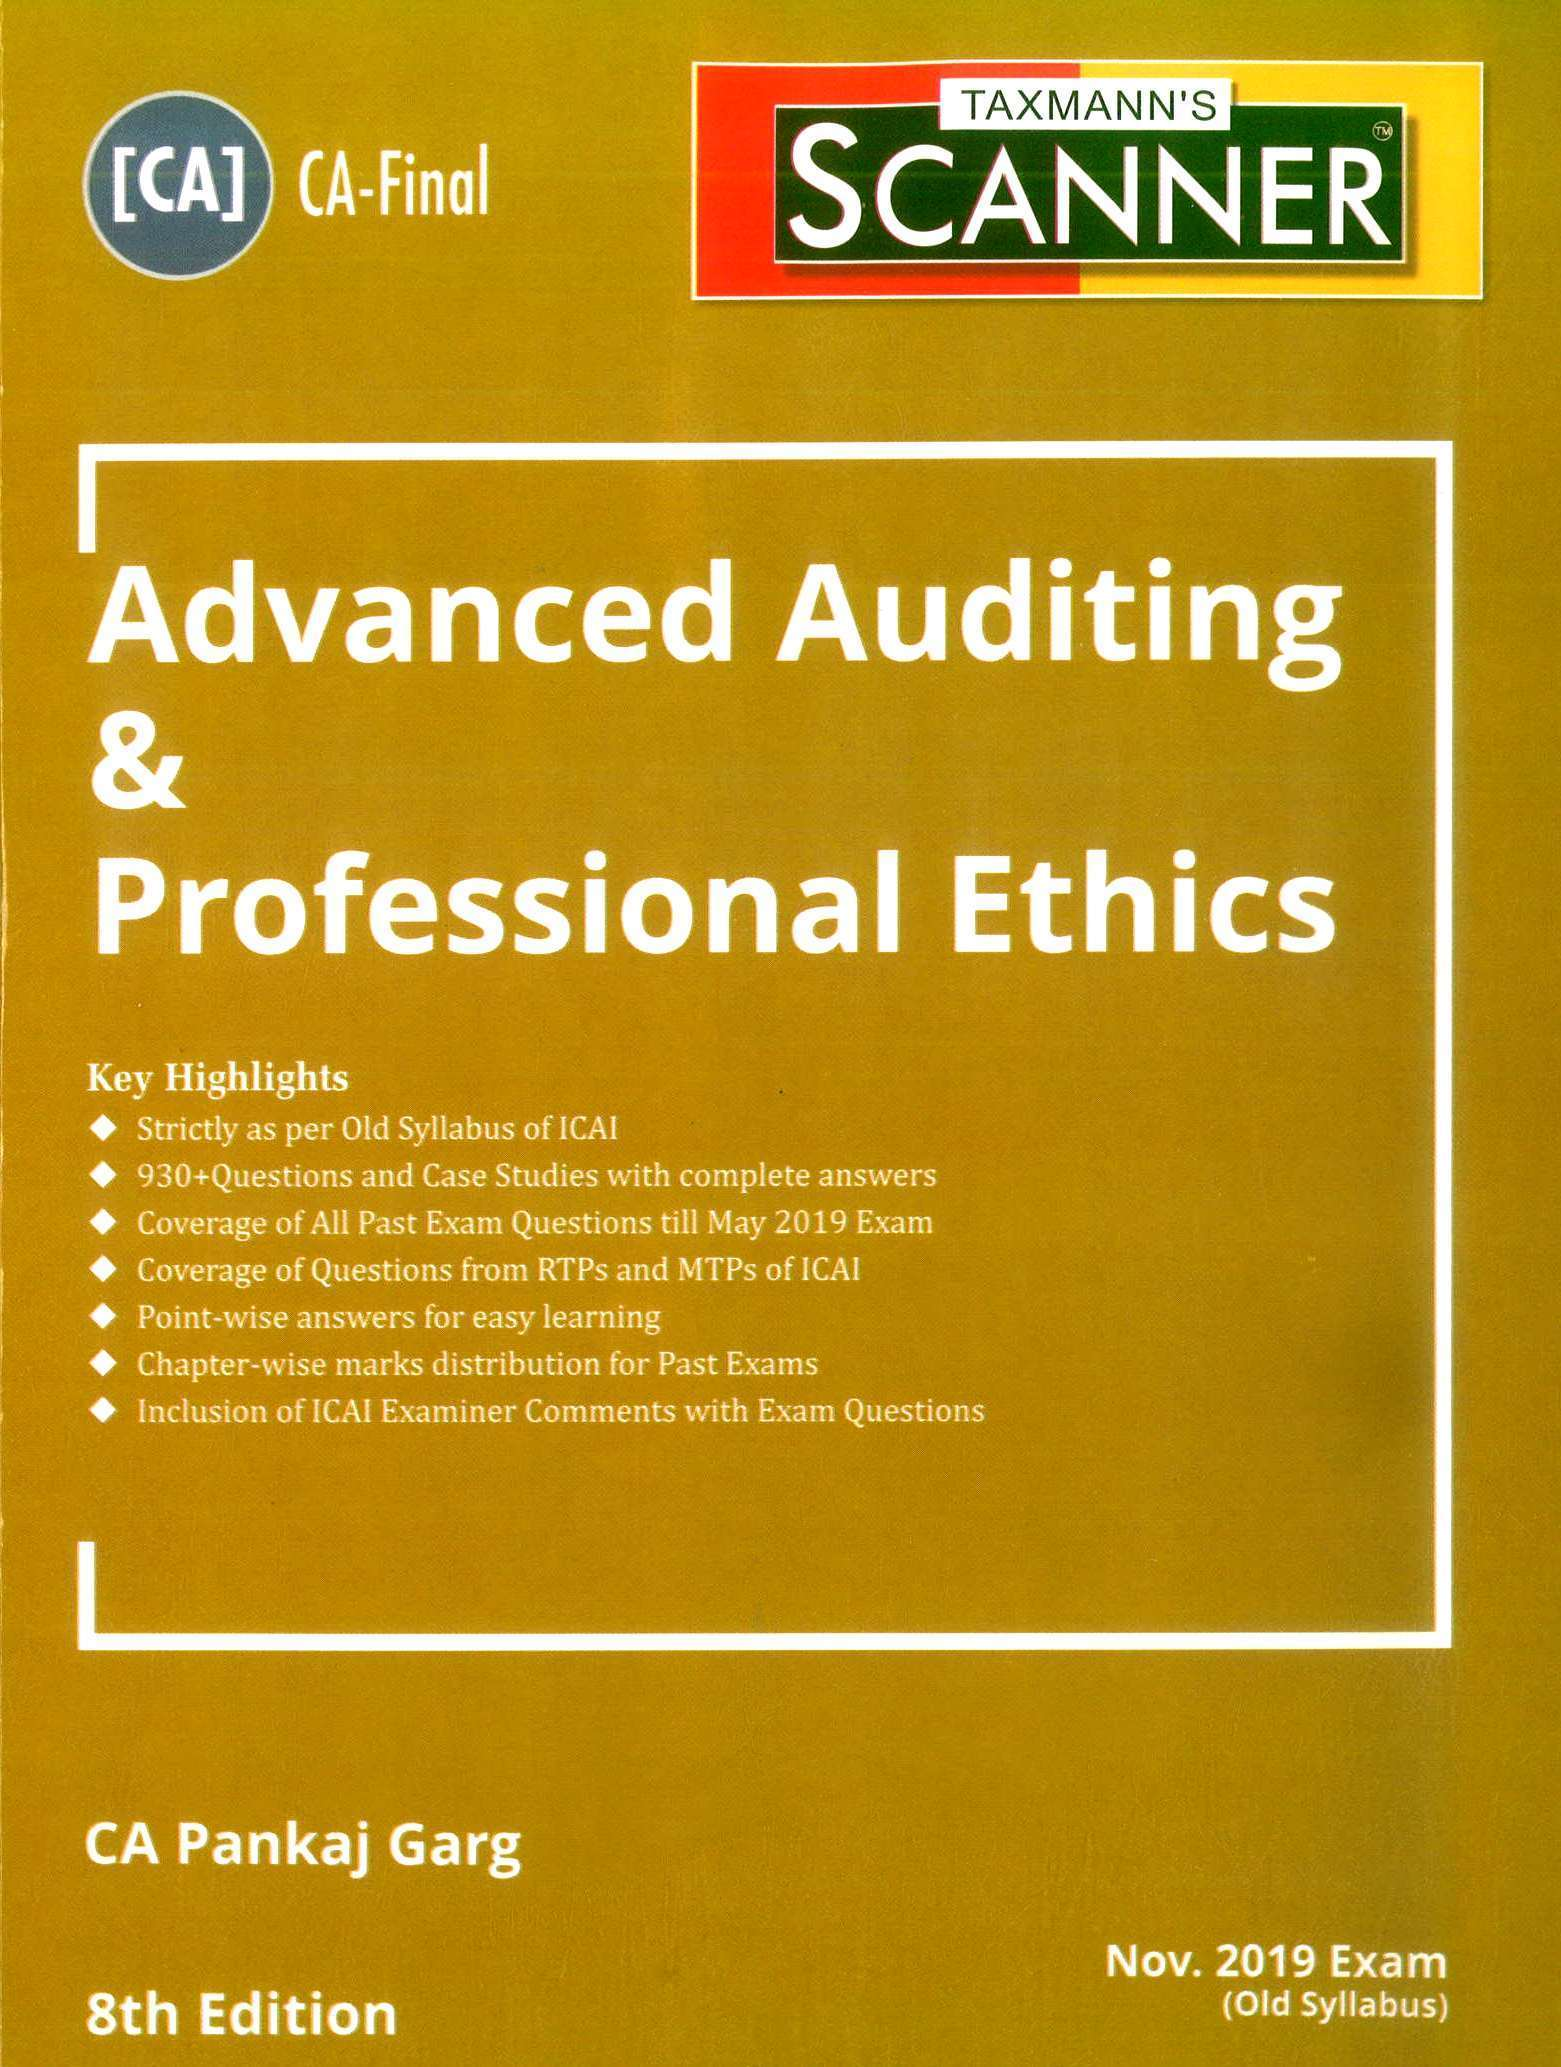 Taxmann Scanner Advanced Auditing & Professional Ethics For CA Final New Syllabus By CA Pankaj Garg Applicable for November 2019 Exam